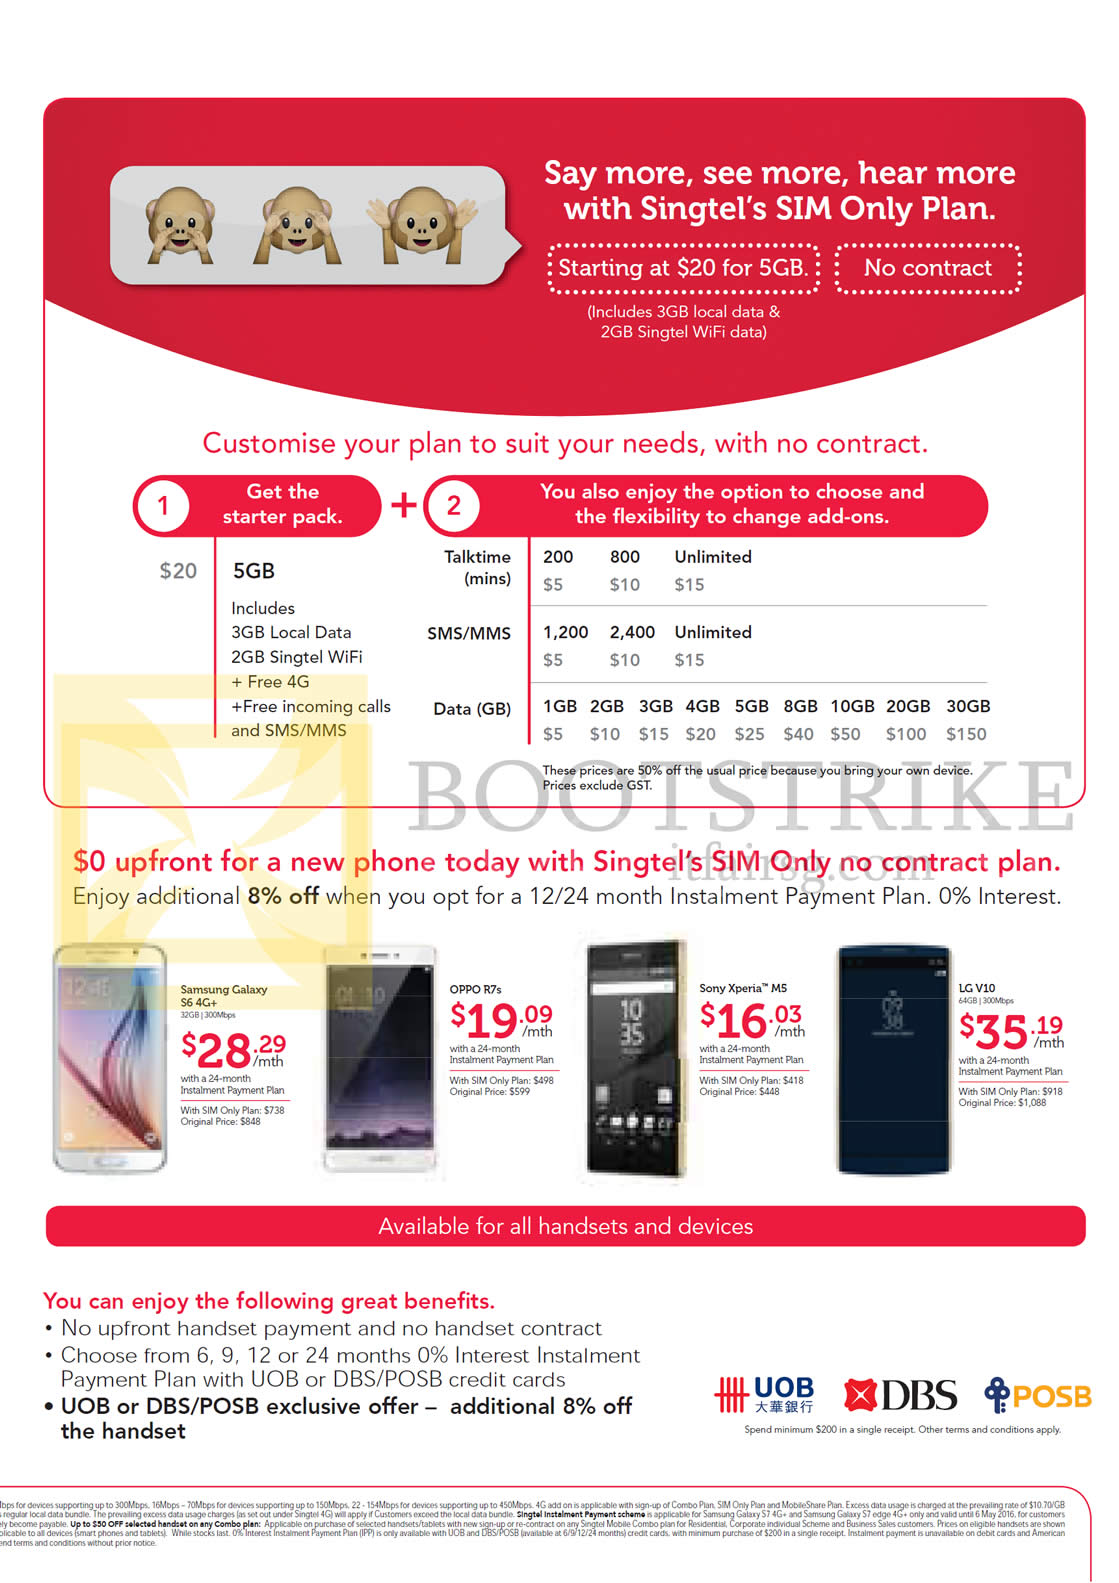 Singtel Sim Only Plan Mobile Phones Starter Pack